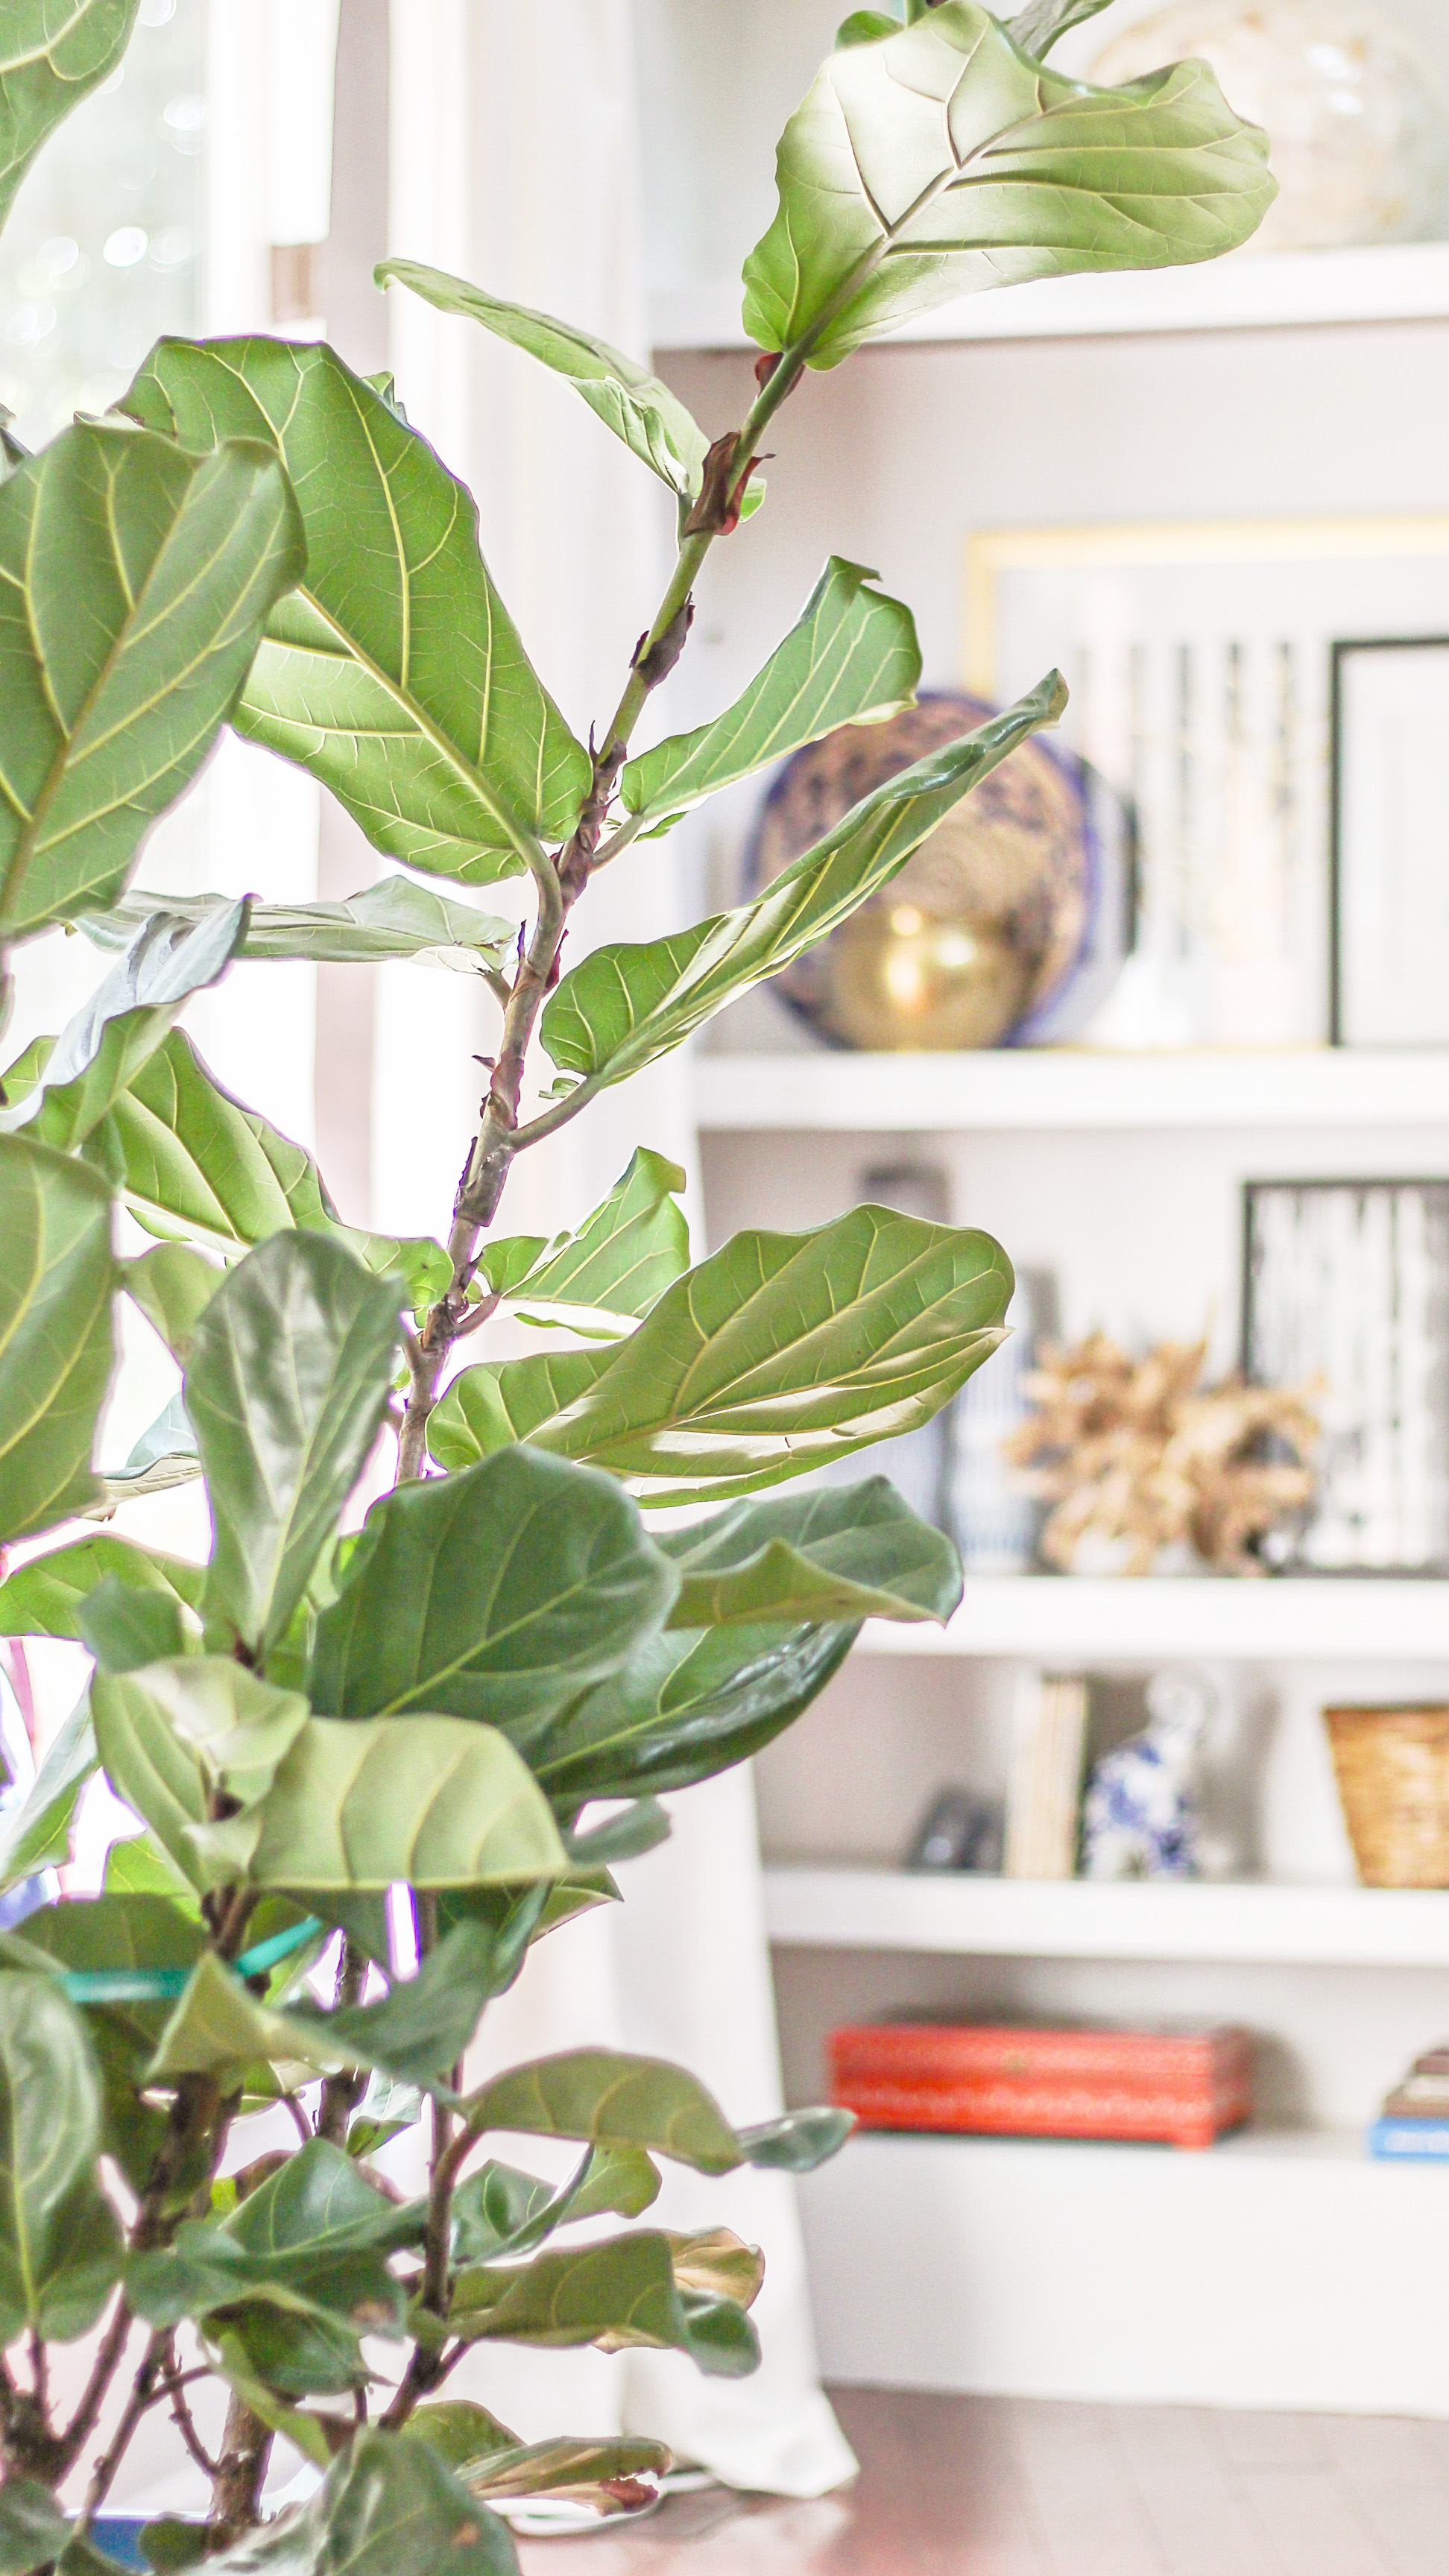 How To Care For A Fiddle Leaf Fig Tree Black Thumb S Guide